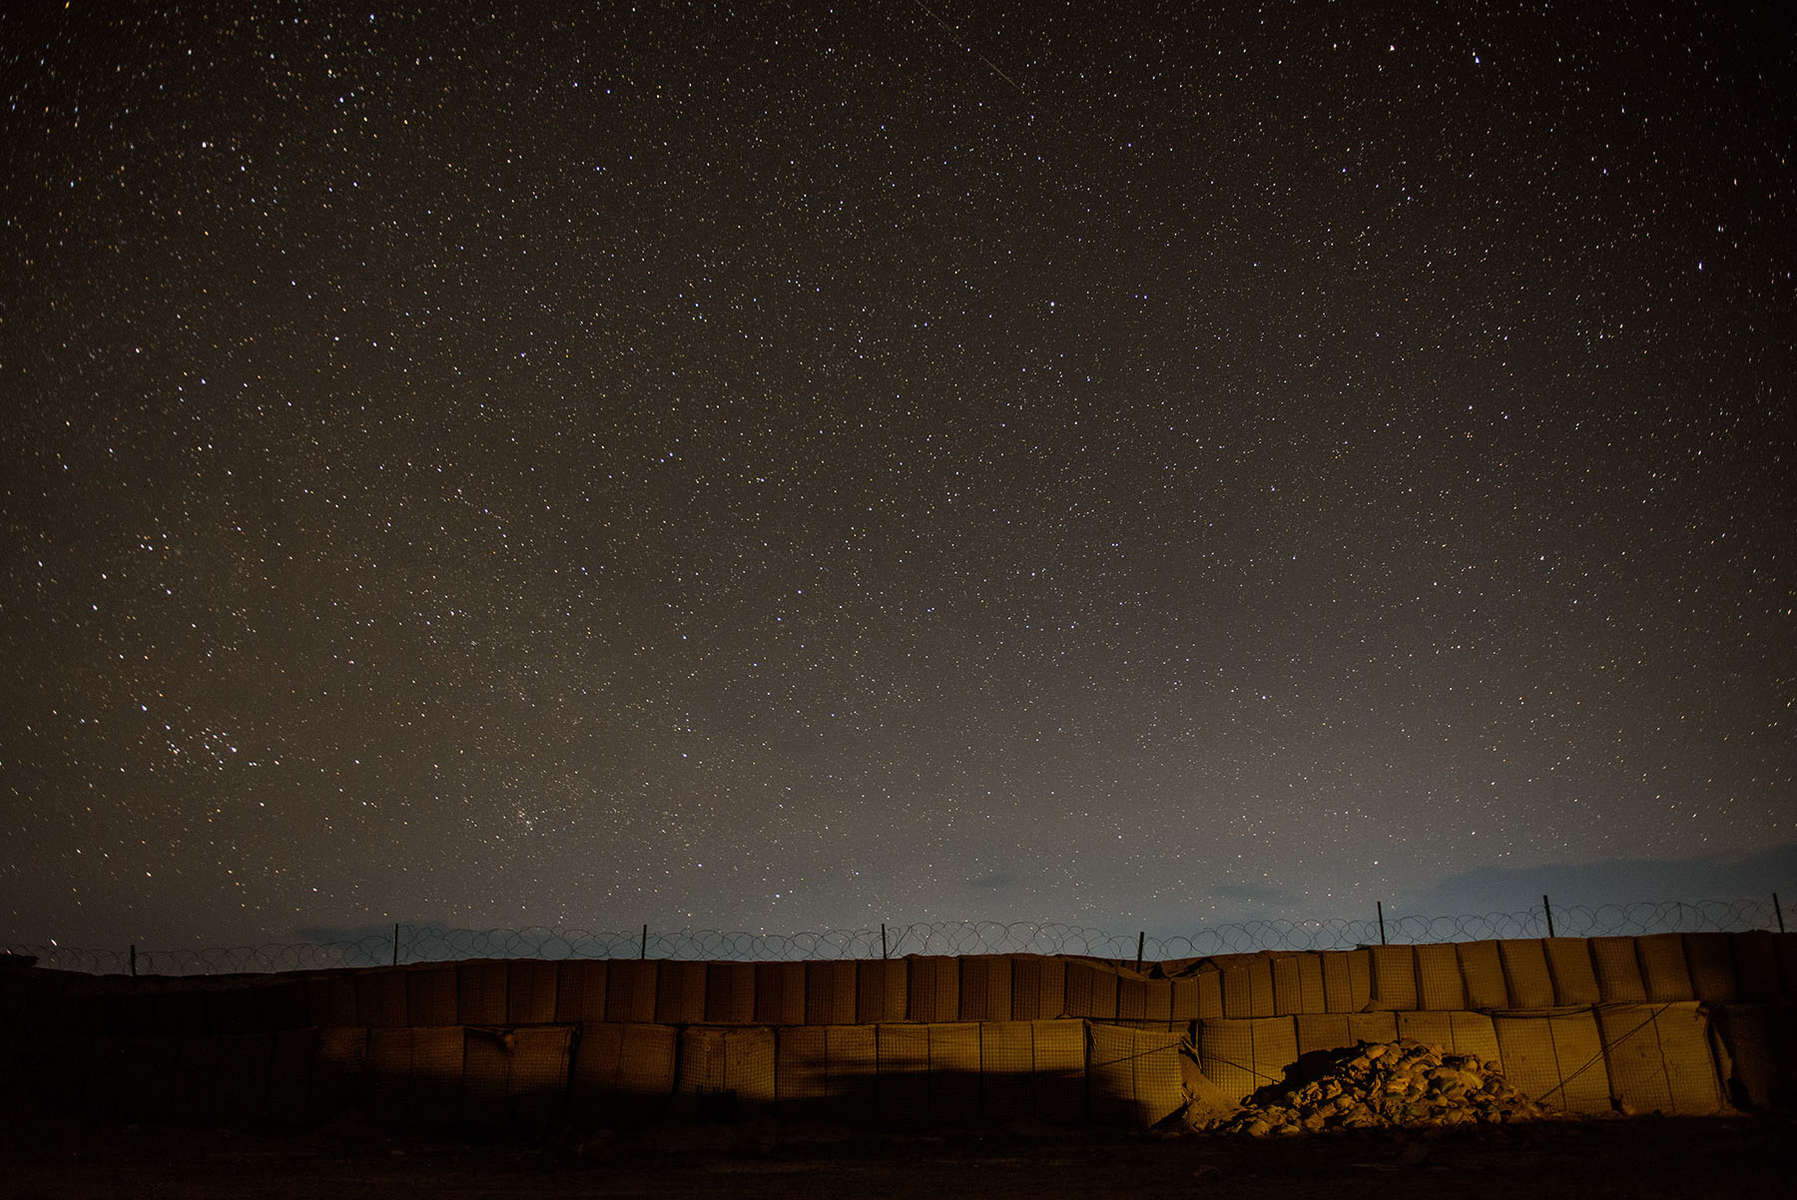 Second Place | Multiple PhotosAndrew Craft, The Fayetteville ObserverThe stars shine brightly above Forward Operating Base Ghazni, which is in almost complete darkness at night. {quote}It's a pretty awesome experience,{quote} First Sgt. Edward King, of D Company, 2nd Battalion, 504th Parachute Infantry Regiment, said. {quote}It was us in the lead. Then them in the lead, but not really. Now they're leading. It's good to see the change that's happened.{quote}Tapping his watch, King said time is running out for U.S. troops in Afghanistan.{quote}They know we're not going to be here to watch them,{quote} he said. {quote}This is their backyard. They want to protect their population, defend their land. We don't have to be standing there alongside them anymore,{quote} he said of the days when soldiers peered over Afghan shoulders to make sure they patrolled correctly. {quote}Those days are long gone.{quote}